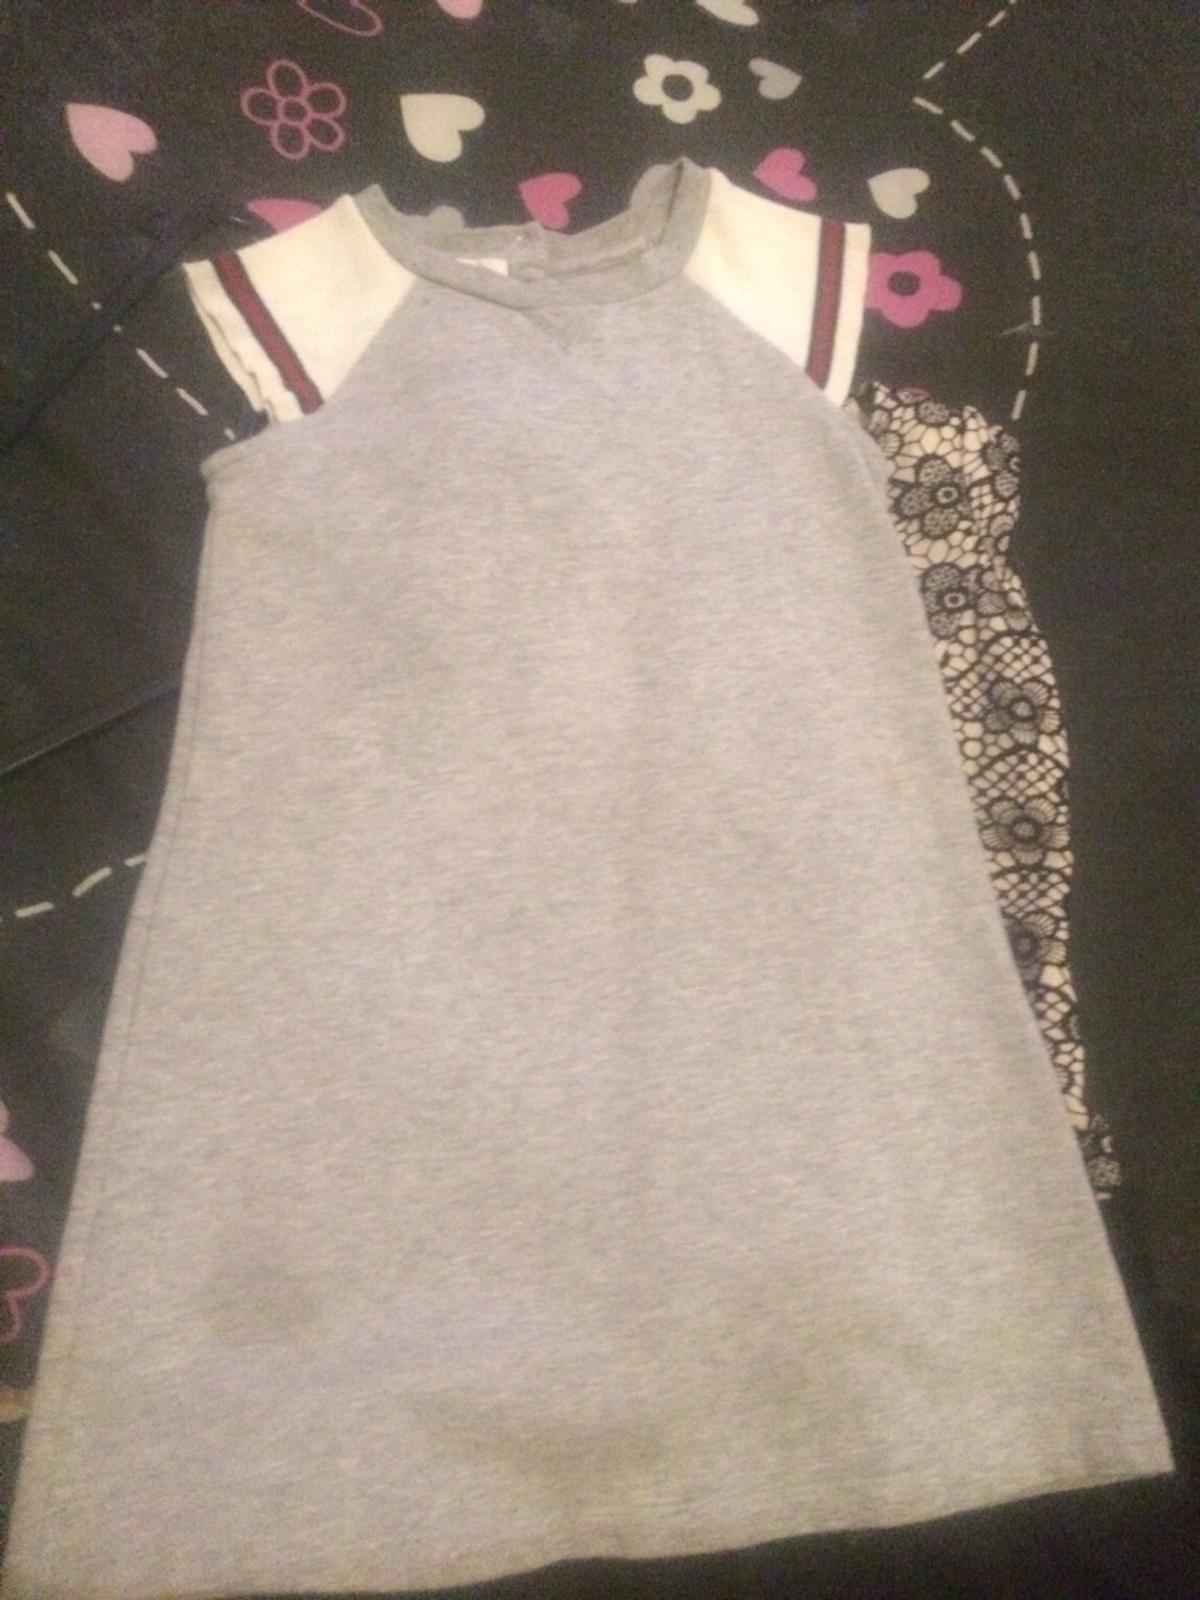 6be3e81ab Gucci dress in ME11 Swale for £30.00 for sale - Shpock